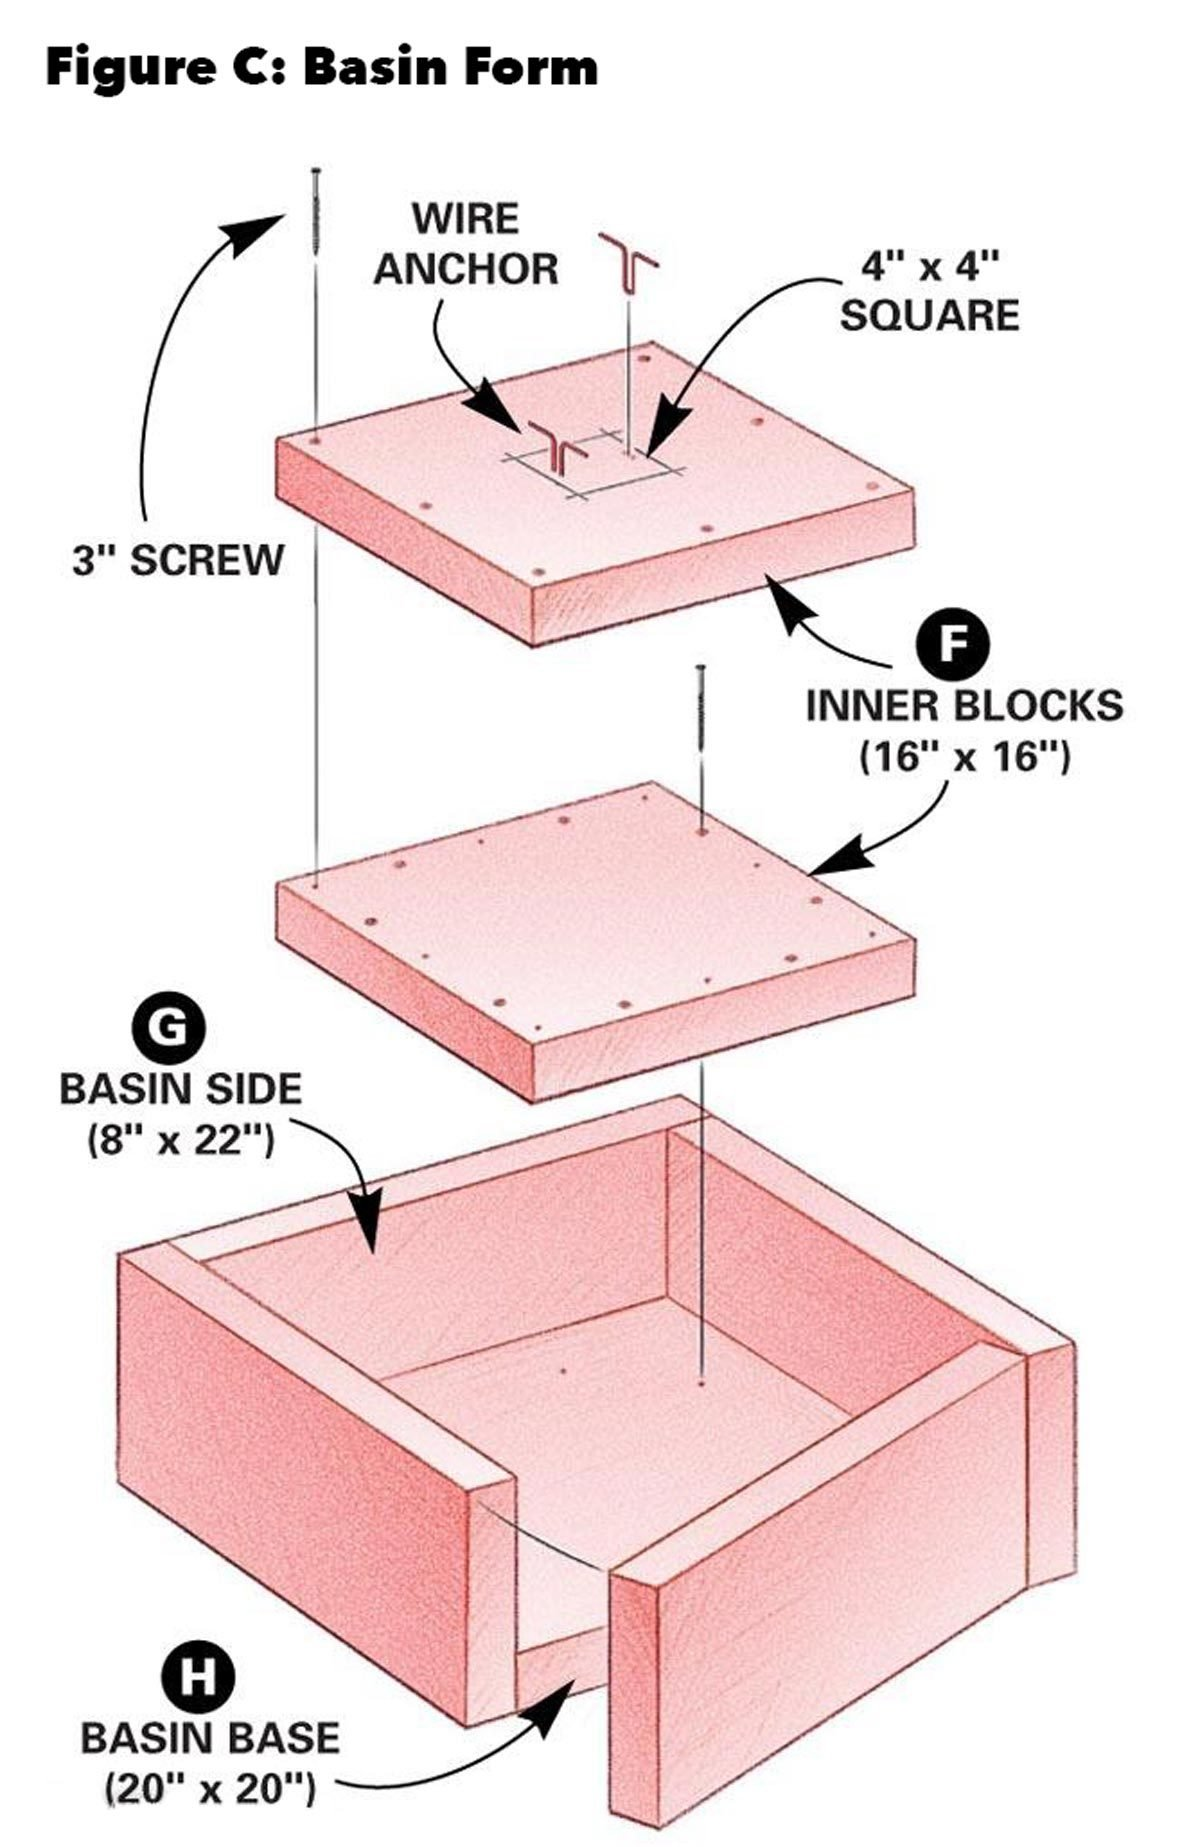 How To Cast Concrete Fountains The Family Handyman Pedestal Fan Wiring Diagram C Basin Form